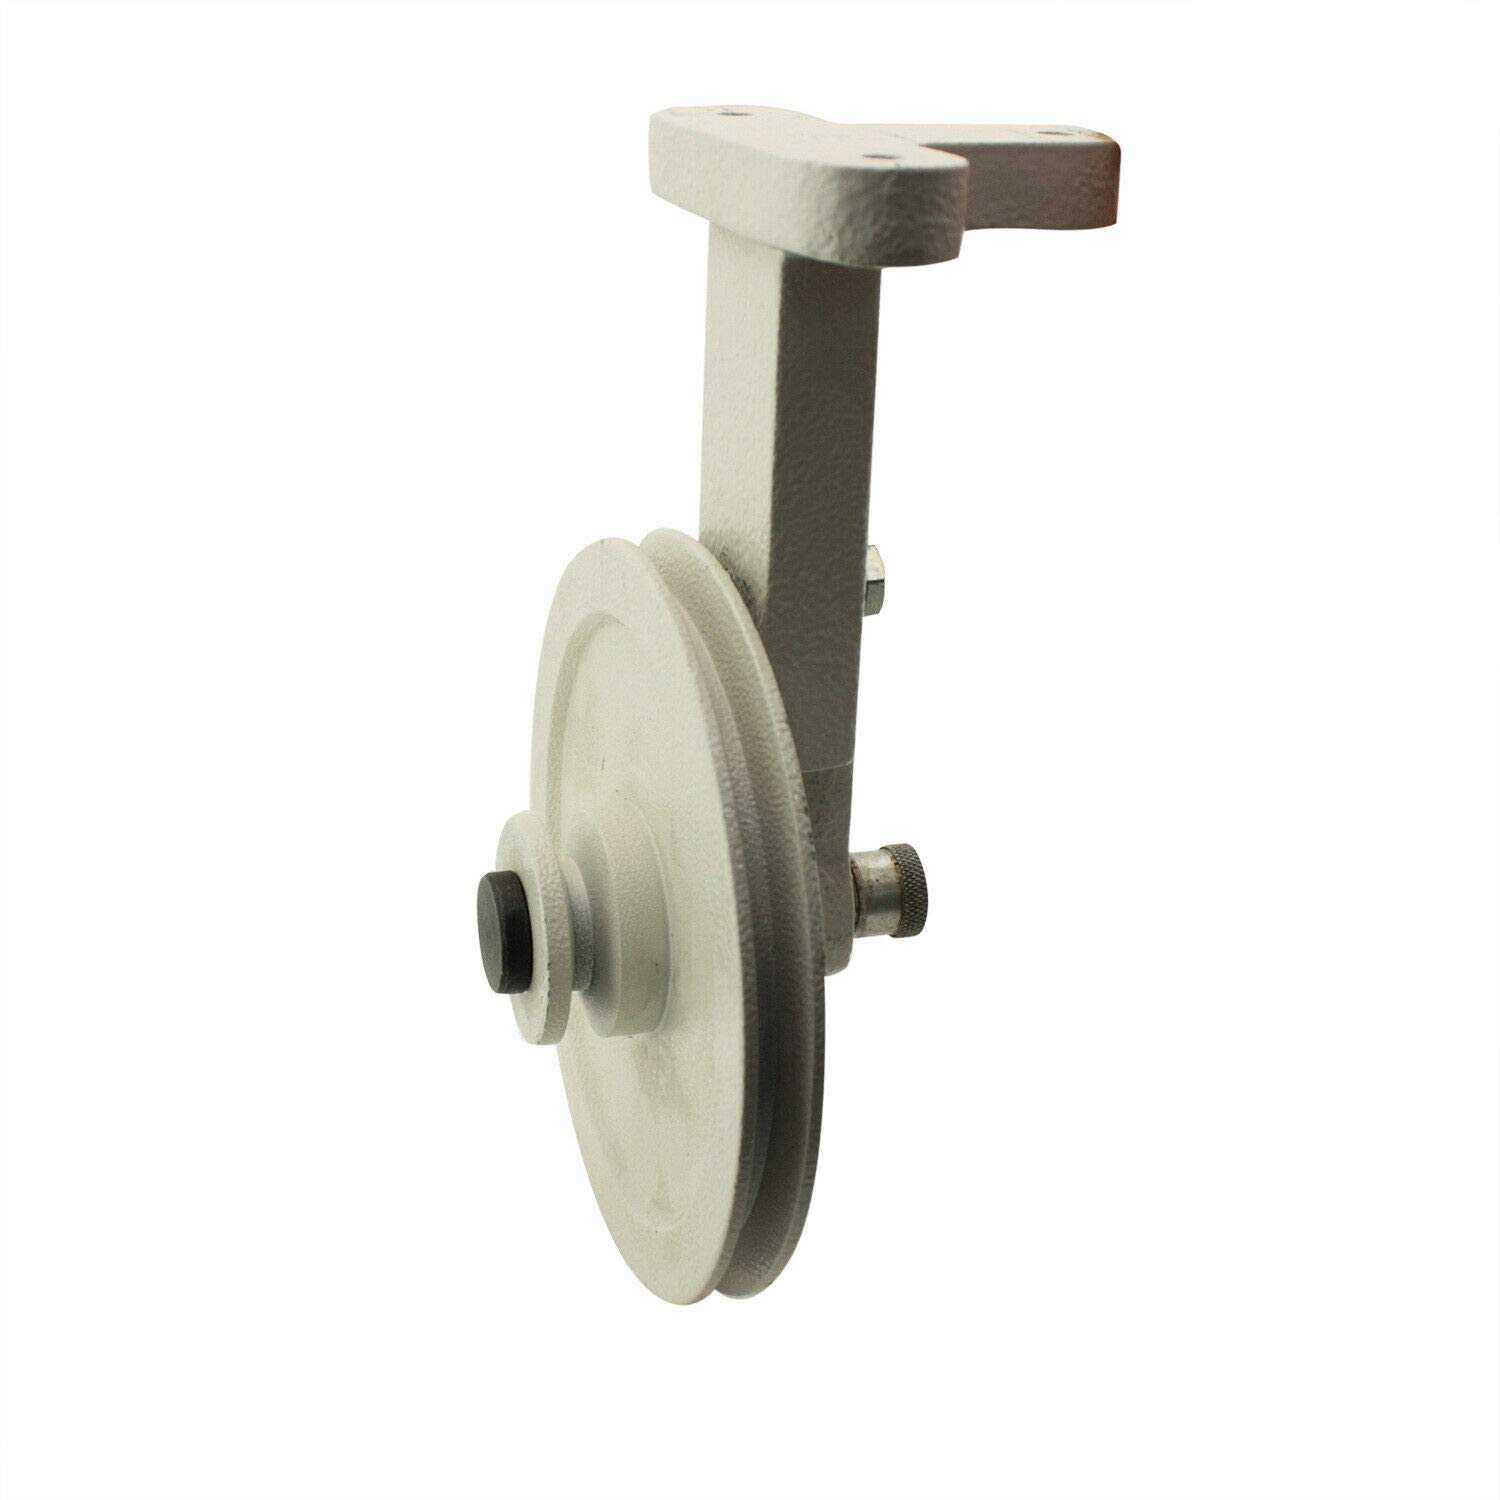 Cutex (TM) Brand Speed Reducer (2'' and 6'' Pulley) for Industrial Sewing Machines by Cutex